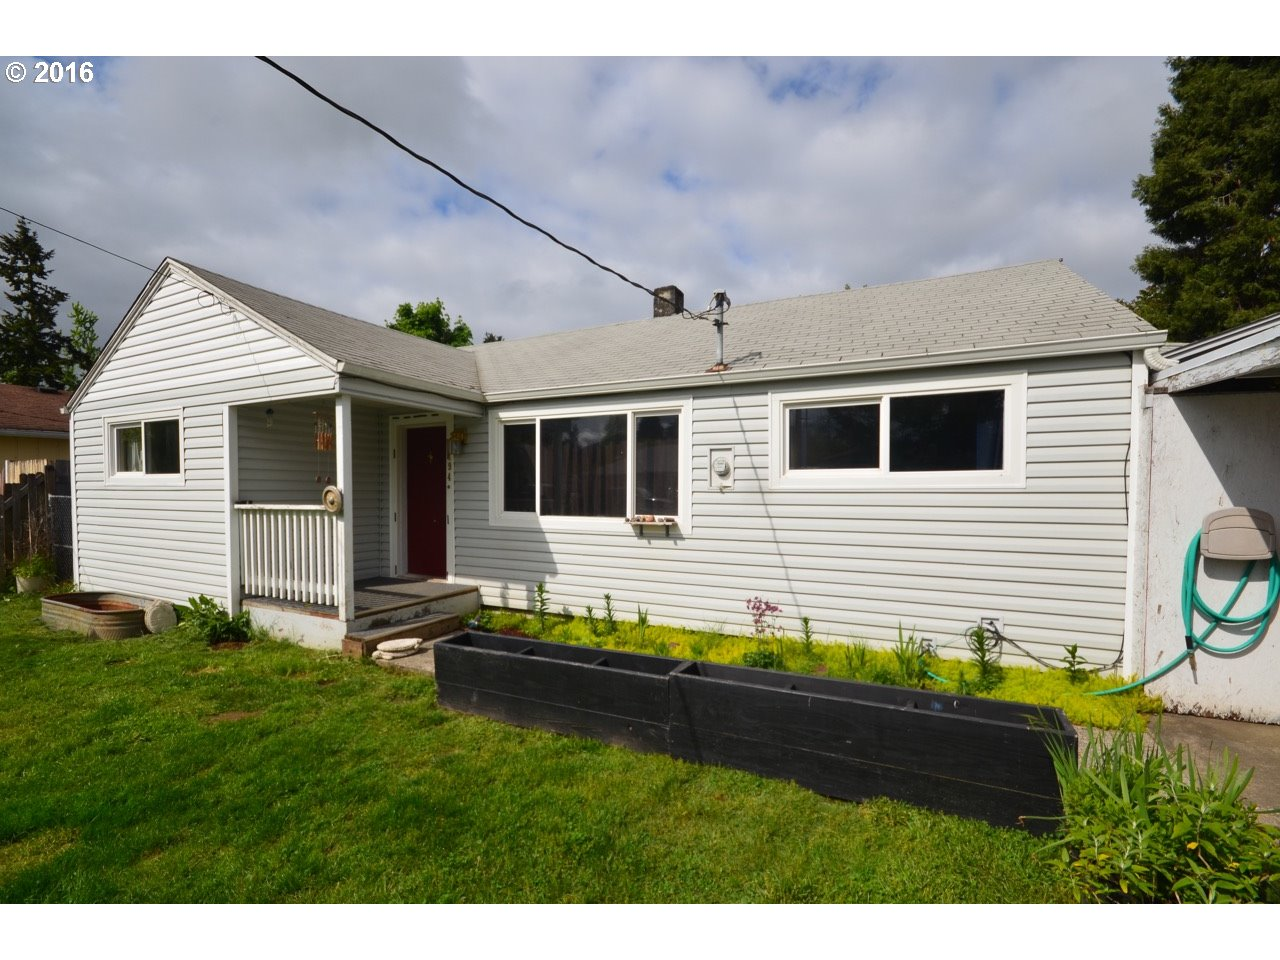 194 S 51st St, Springfield, OR